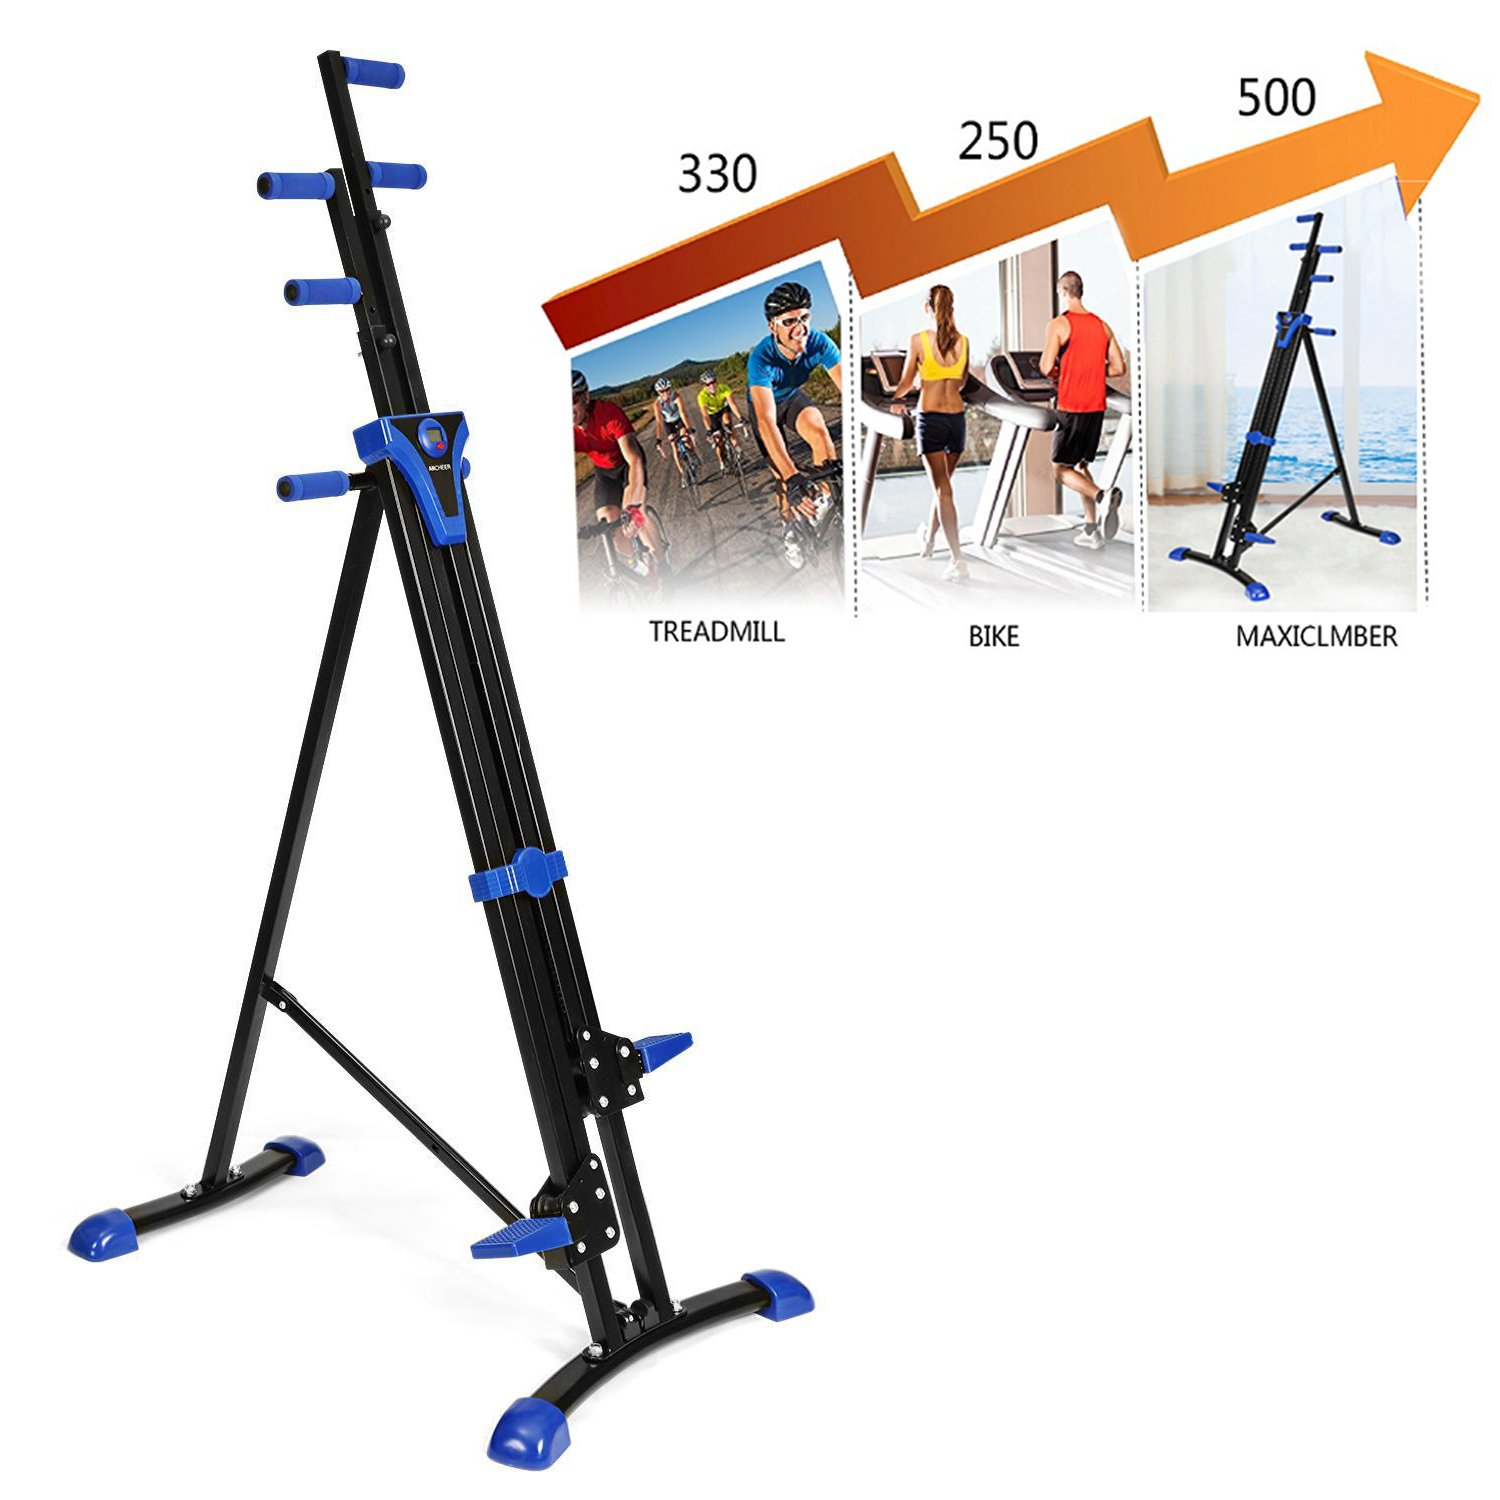 ETUOJI 2 In 1 Vertical Climber, Total Body Workout Cardio Machine Folding stair climber Portable Fitness Machine Step Climber with Digital Workout Timer (US STOCK) by Etuoji